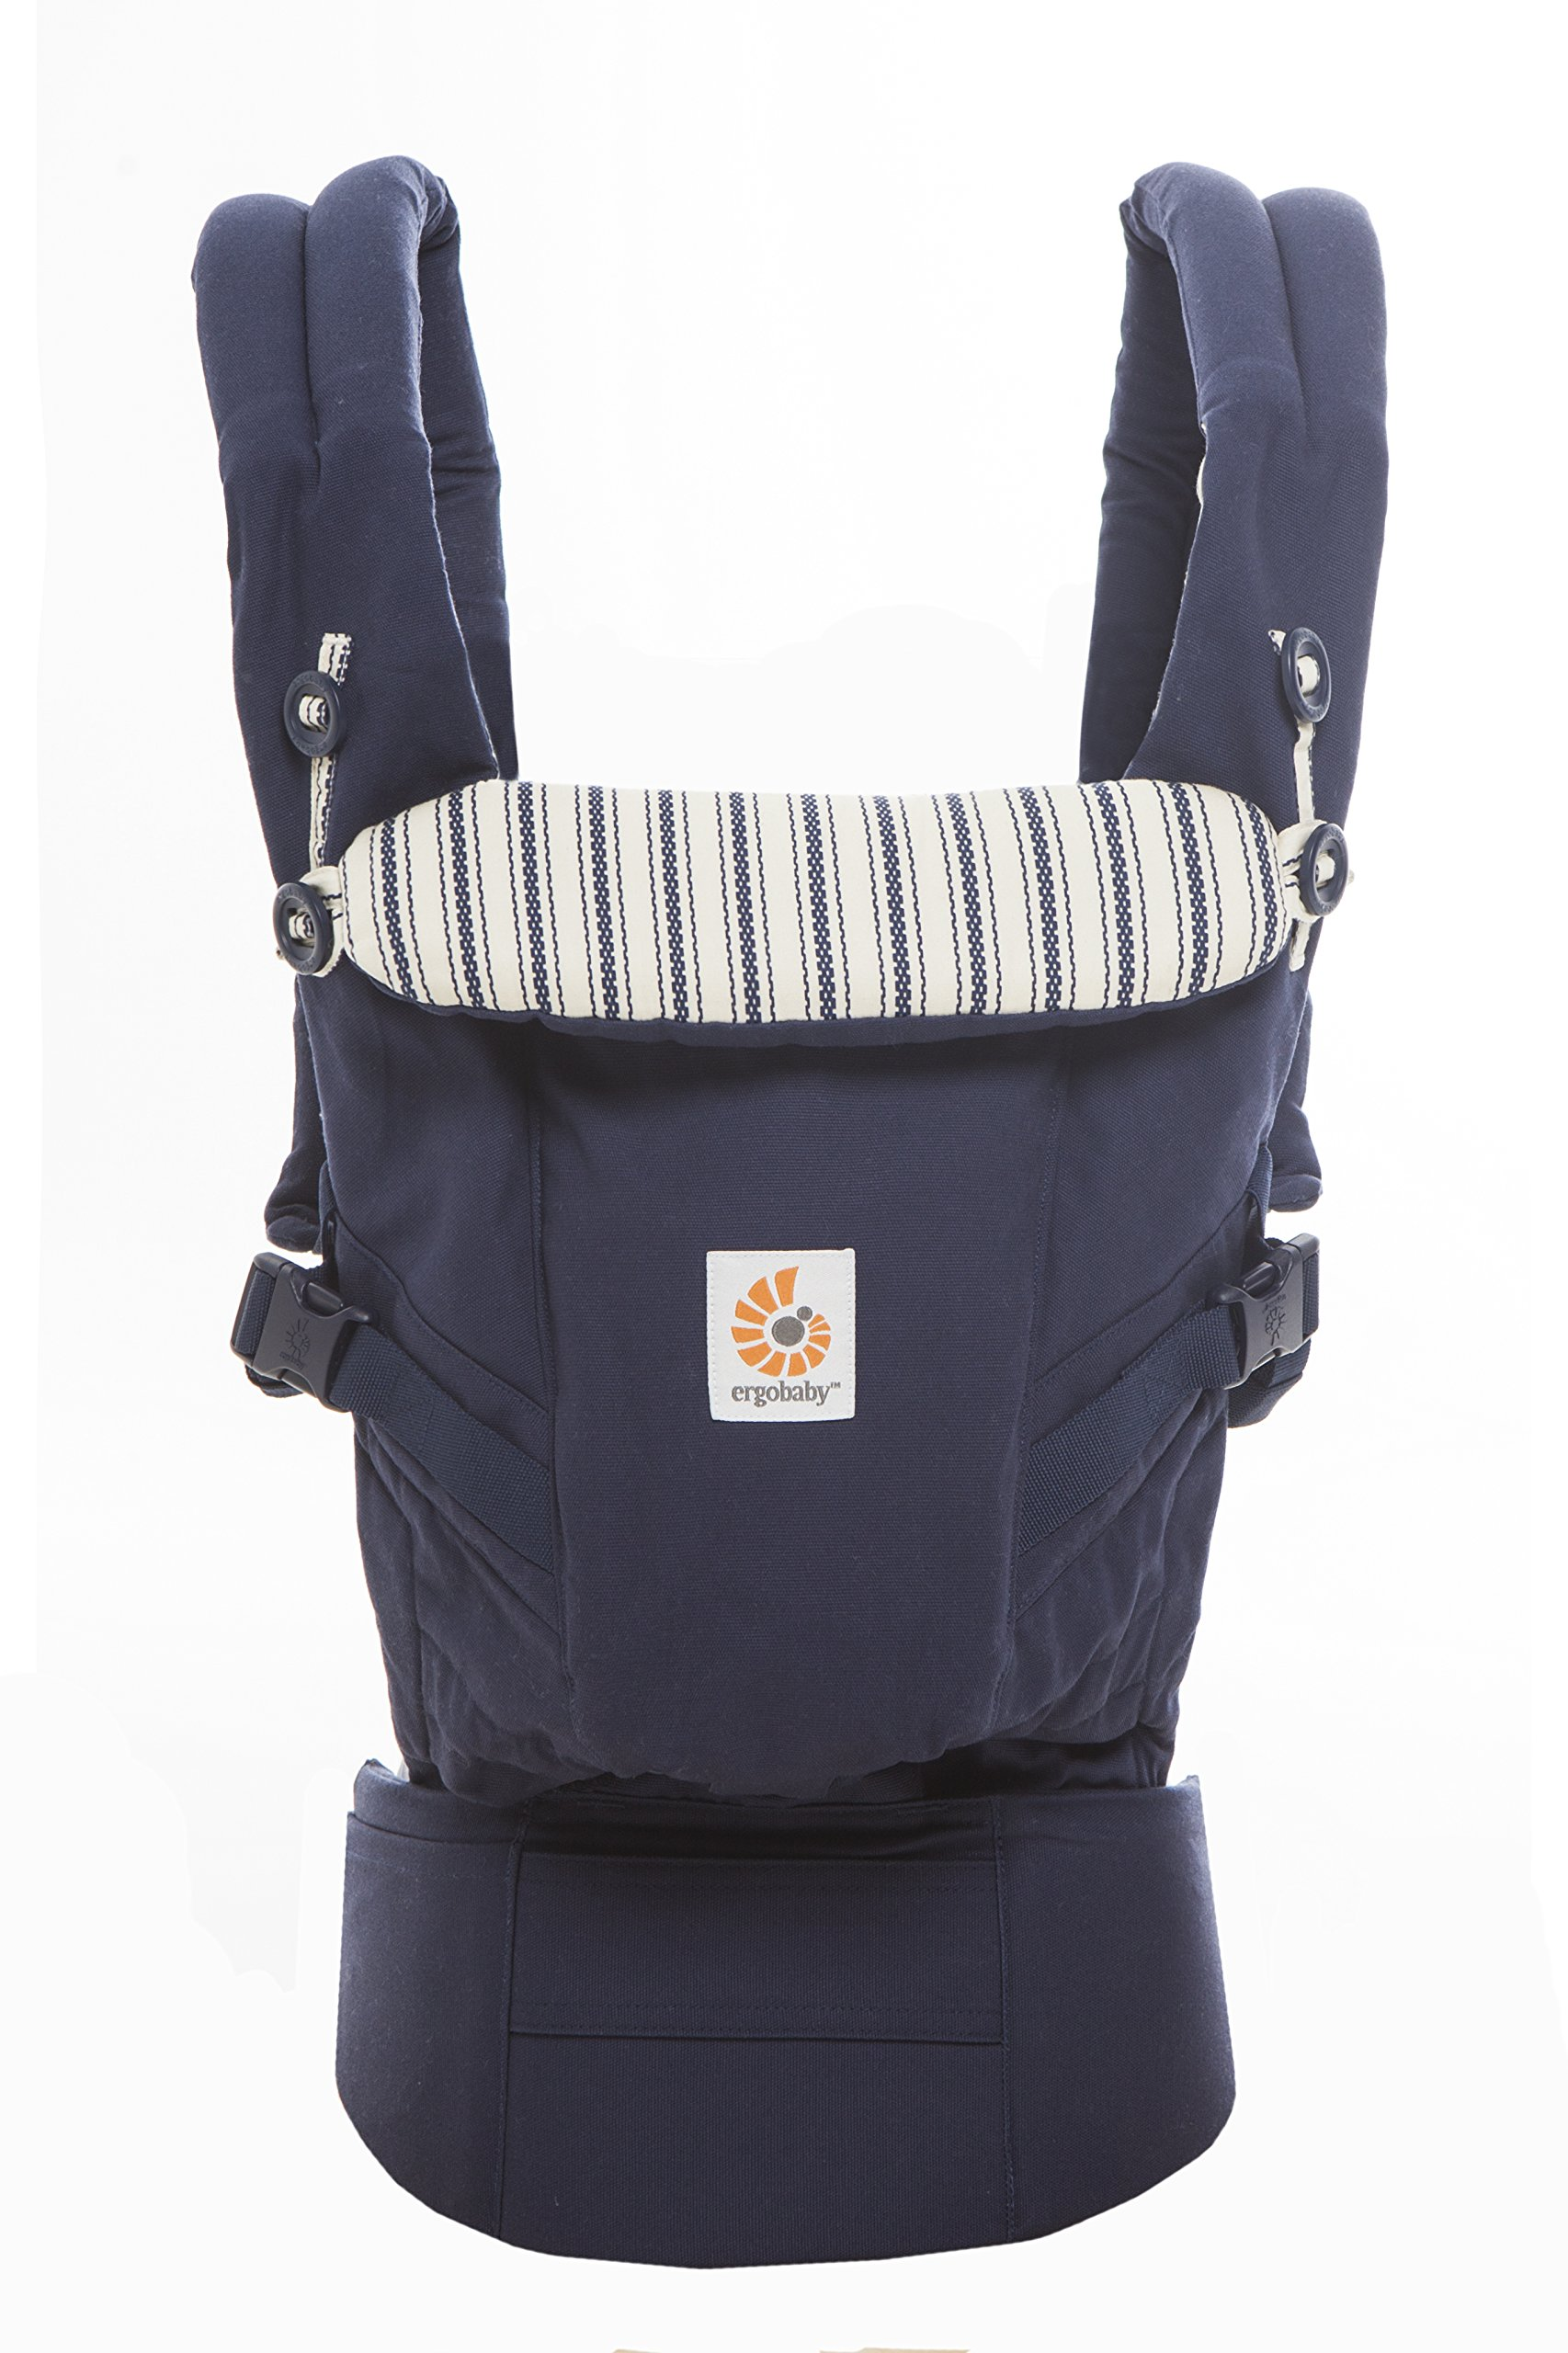 Ergobaby Baby Carrier for Newborn to Toddler, Admiral Blue Adapt 3-Position Ergonomic Child Carrier Backpack Ergobaby Carrier for newborns - The ergonomic bucket seat gradually adjusts to your growing baby, to ensure baby is seated in a natural frog-leg position (M-shape position) from newborn to toddler (3.2-20kg / 7-45lbs). NEW - Now with lumbar support. Long-wearing comfort for parents with even weight distribution between hips and shoulders. Lumbar support waistbelt that can be adjusted to the height of the carry position for extra, long-wearing comfort. 3carry positions: front-inward, hip and back. The carrier has a padded, foldable head and neck support and a tuck-away baby hood for sun protection (UPF50+) and privacy. It is possible to breastfeed in the carrier. 2